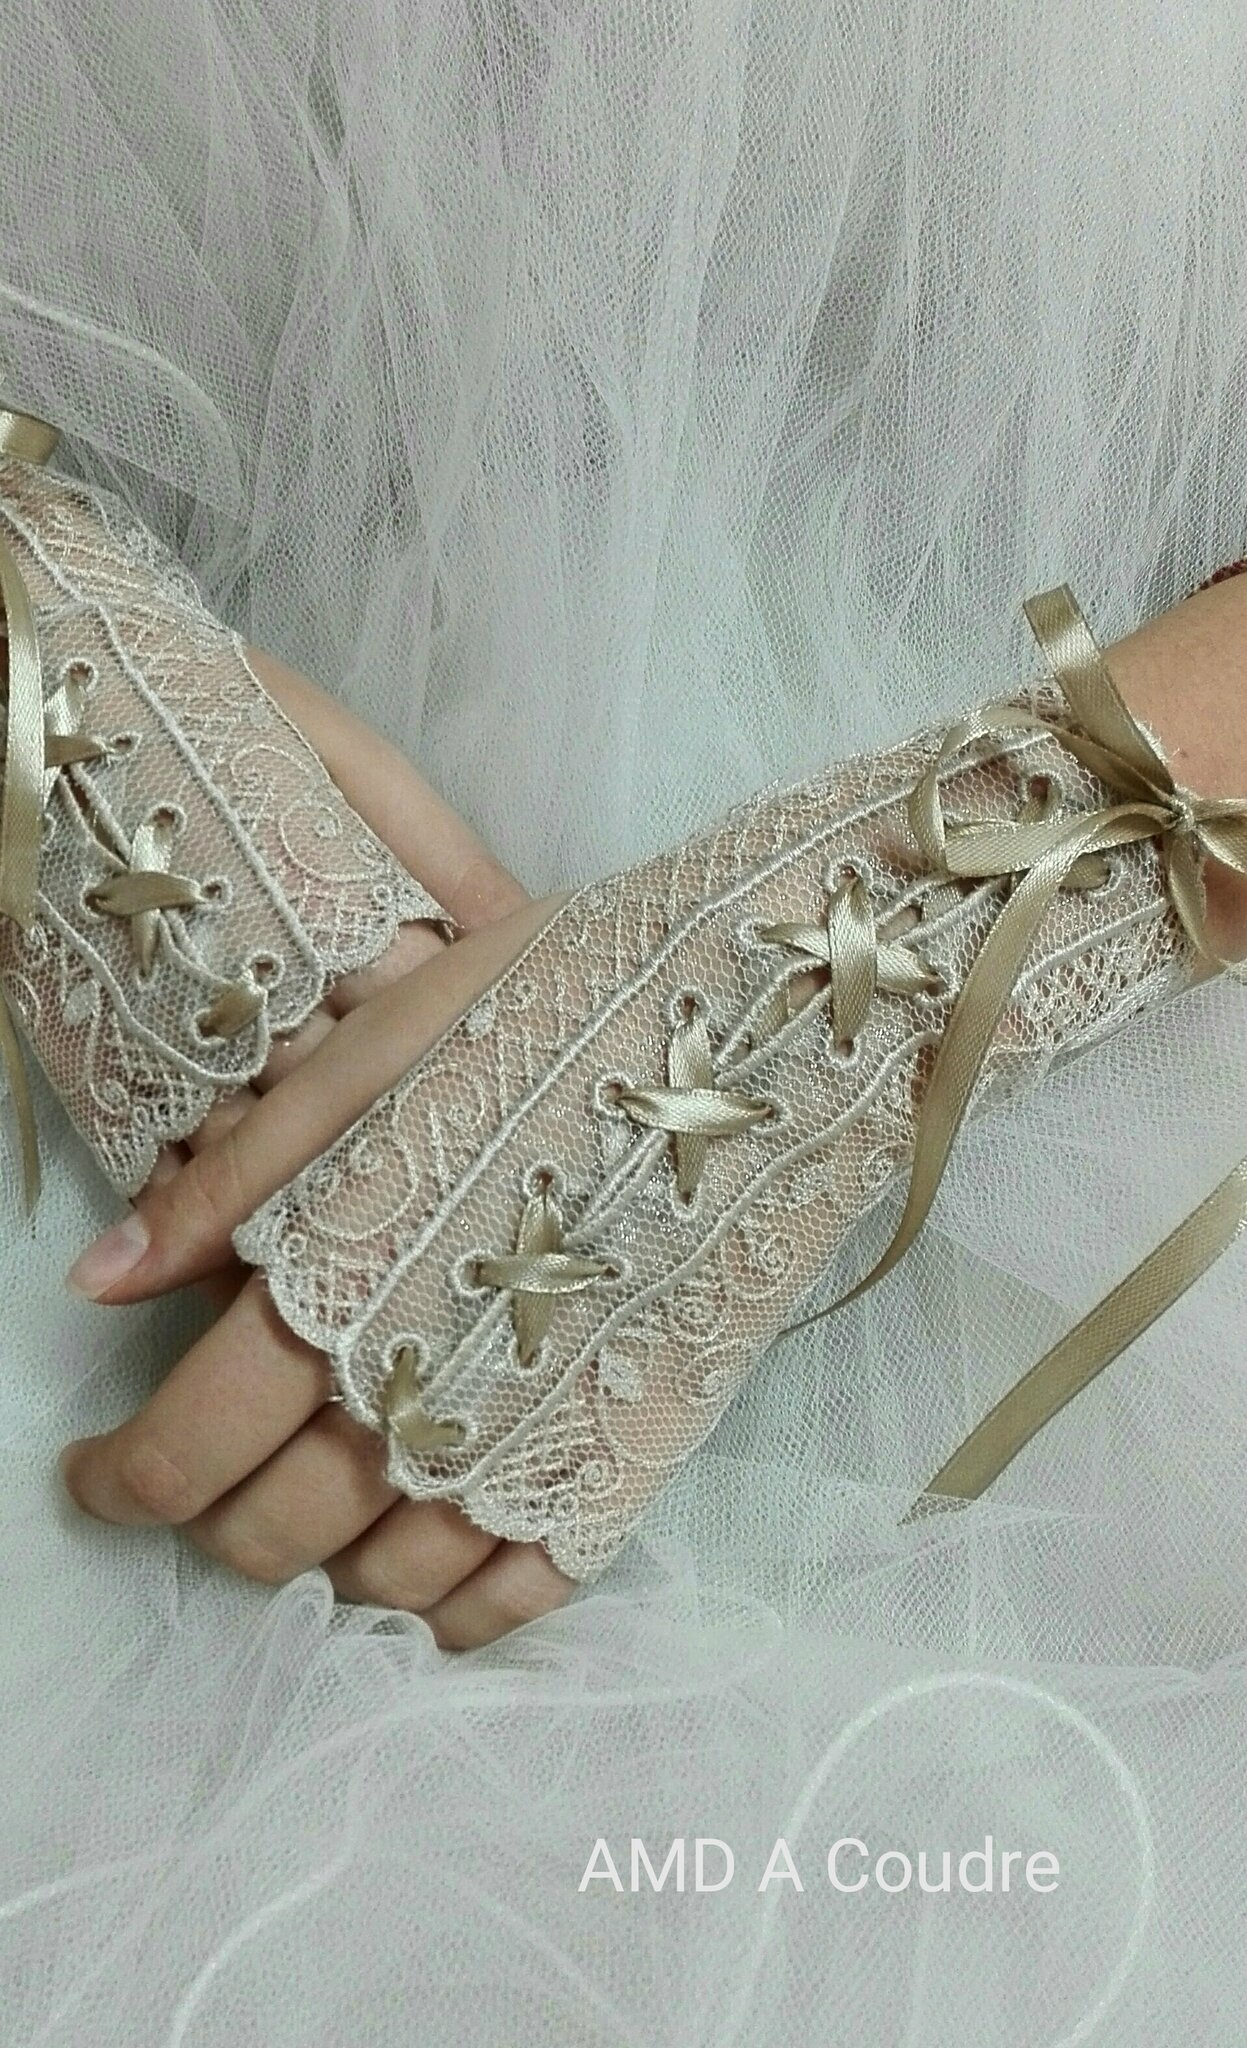 mitaines, gants de mariee, wedding bride broderie amd a coudre